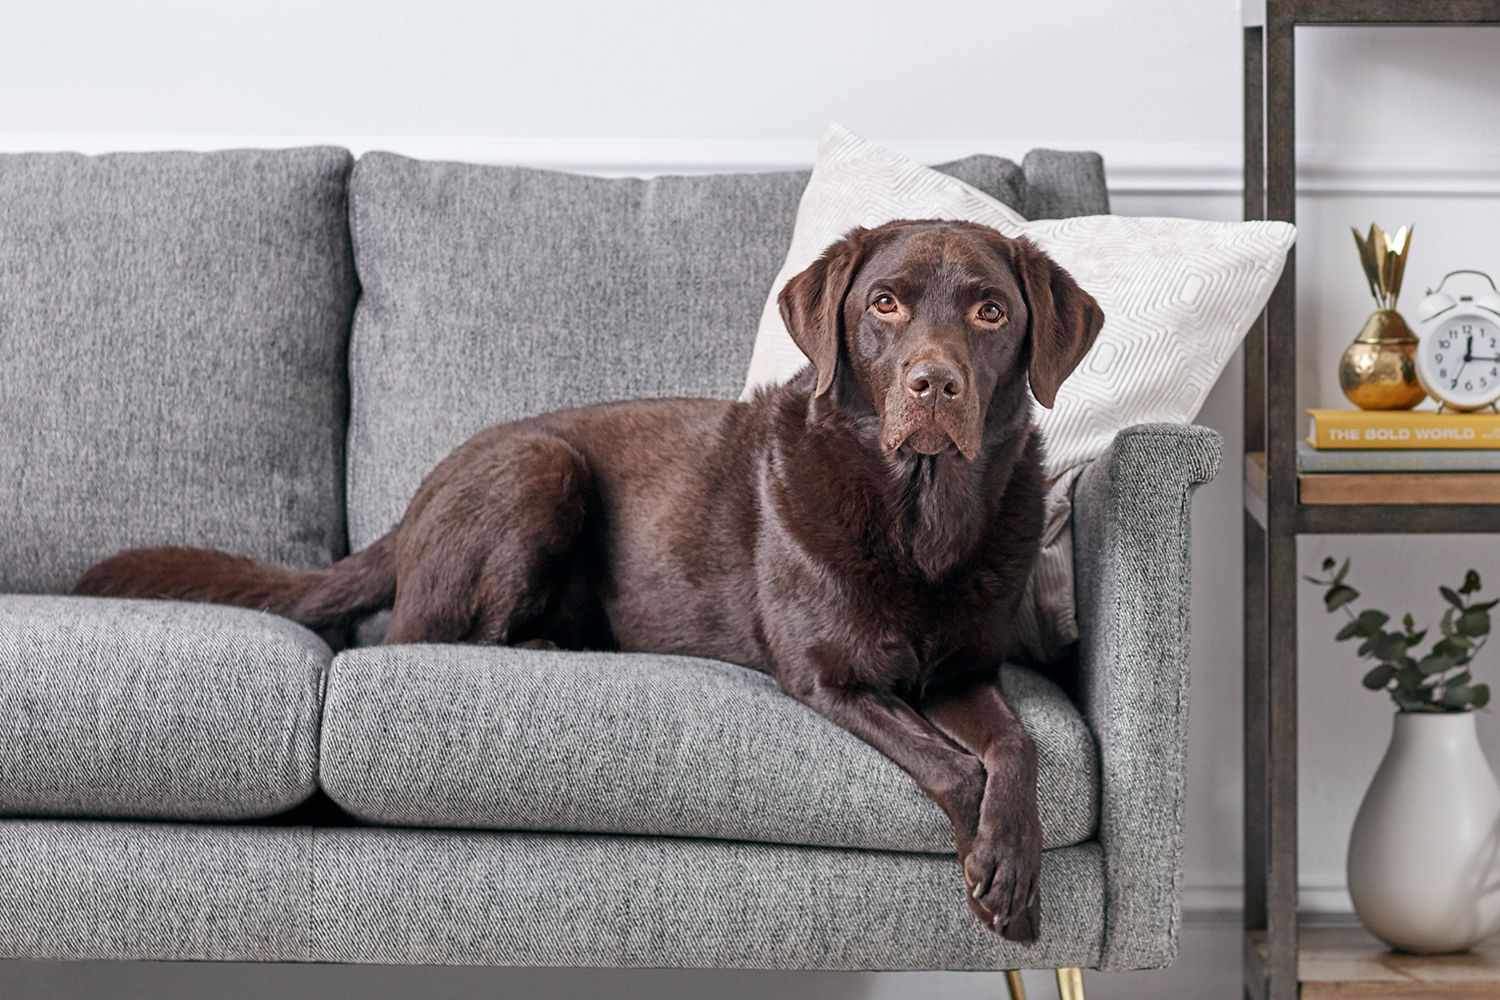 Labrador Retriever dog sitting on gray couch in front of white throw pillow